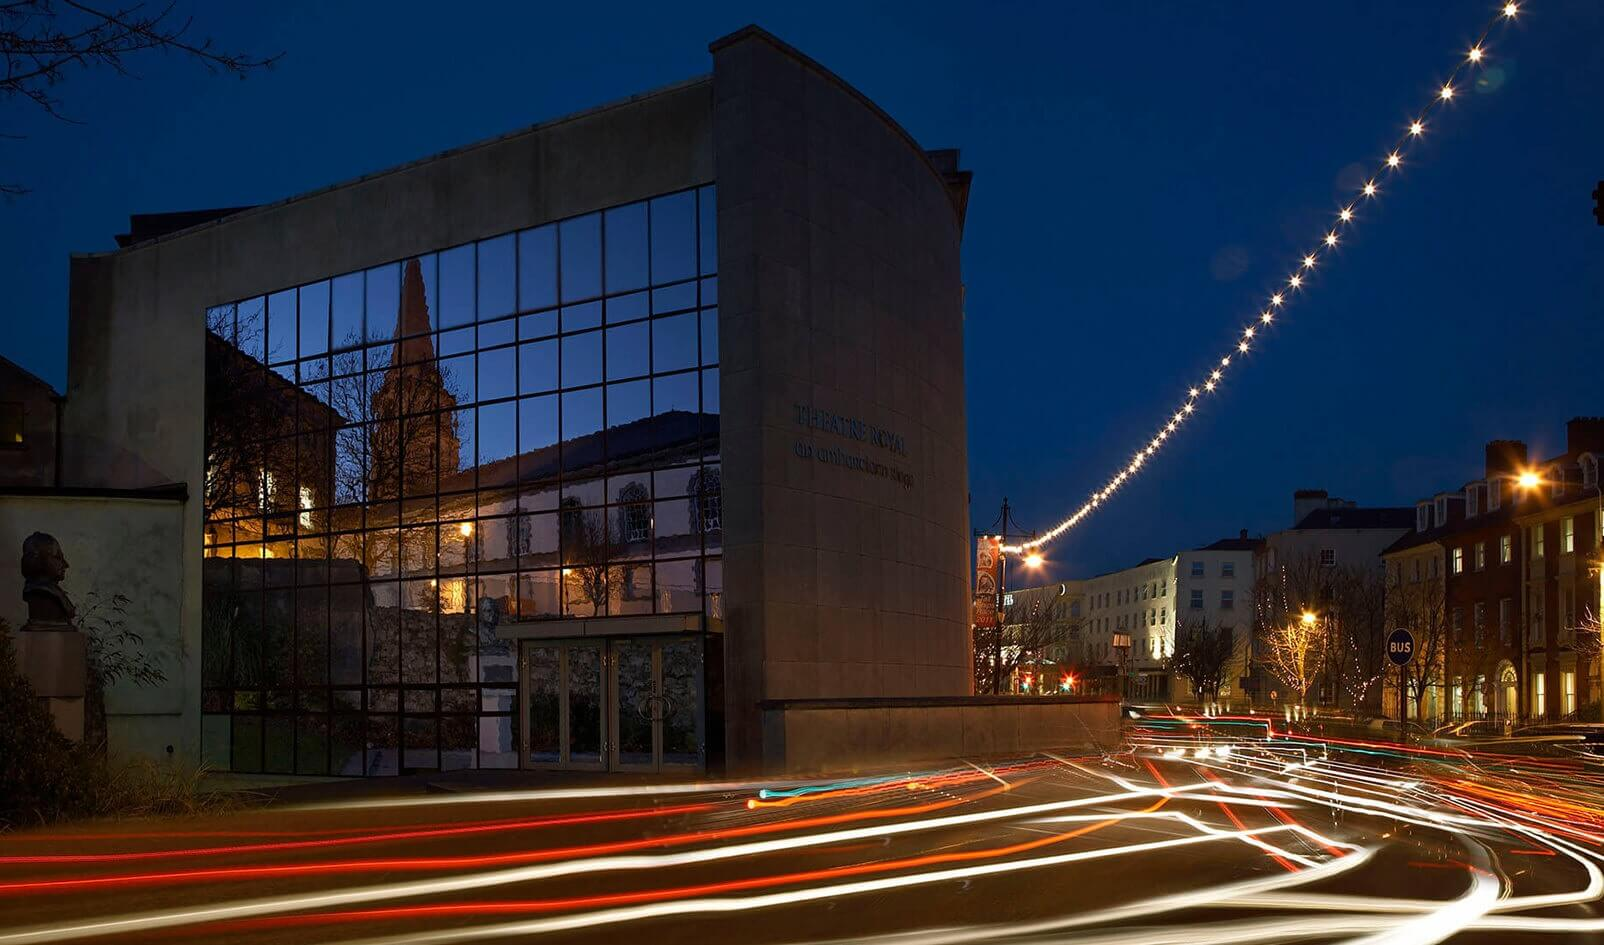 Slider Image Community Cultural Conservation Regeneration Cjfa Architecture Theatre Royal City Hall Waterford